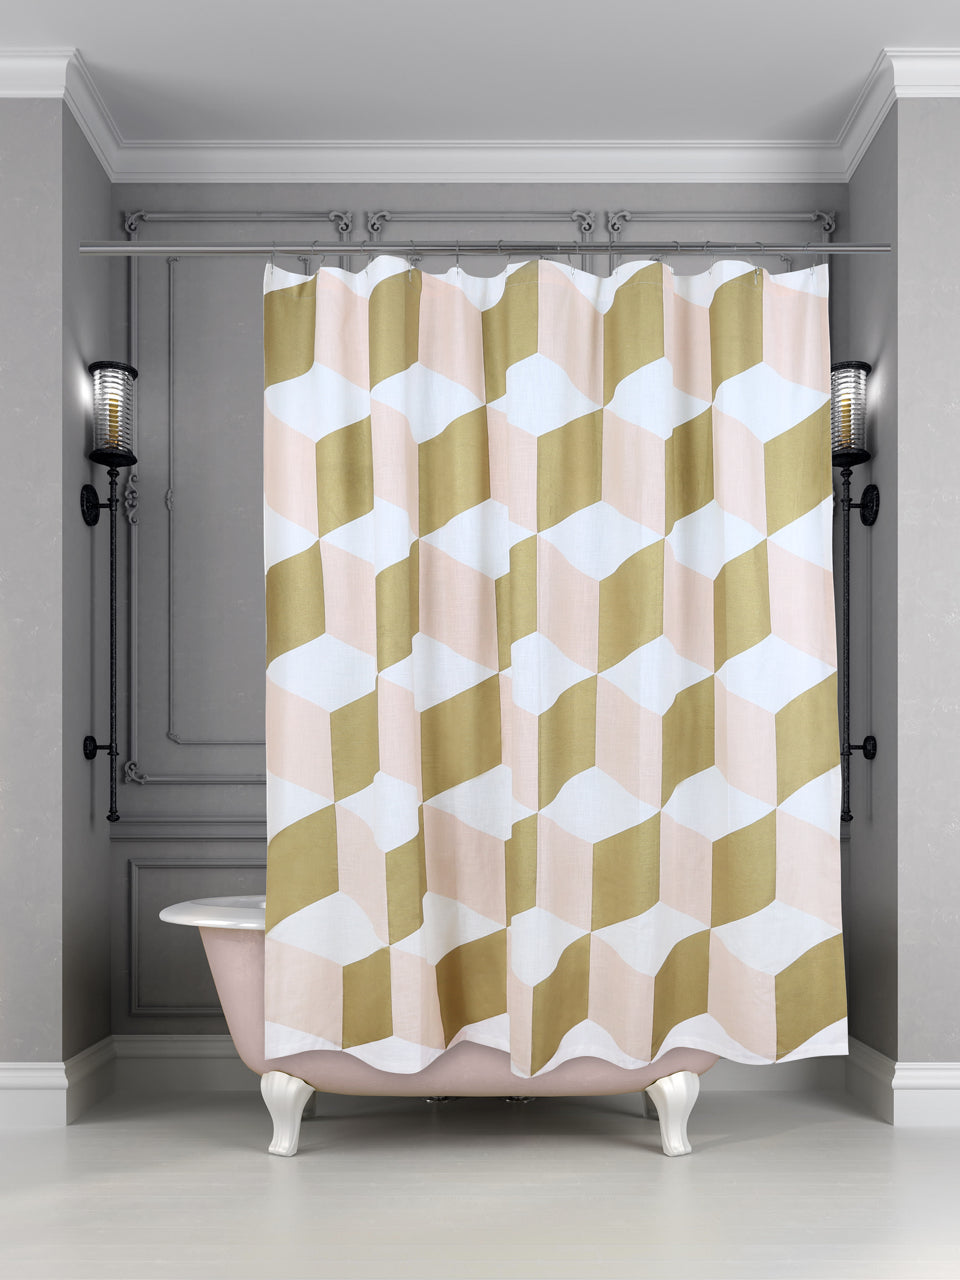 Siren Song Palazzo Shower Curtain - Shell